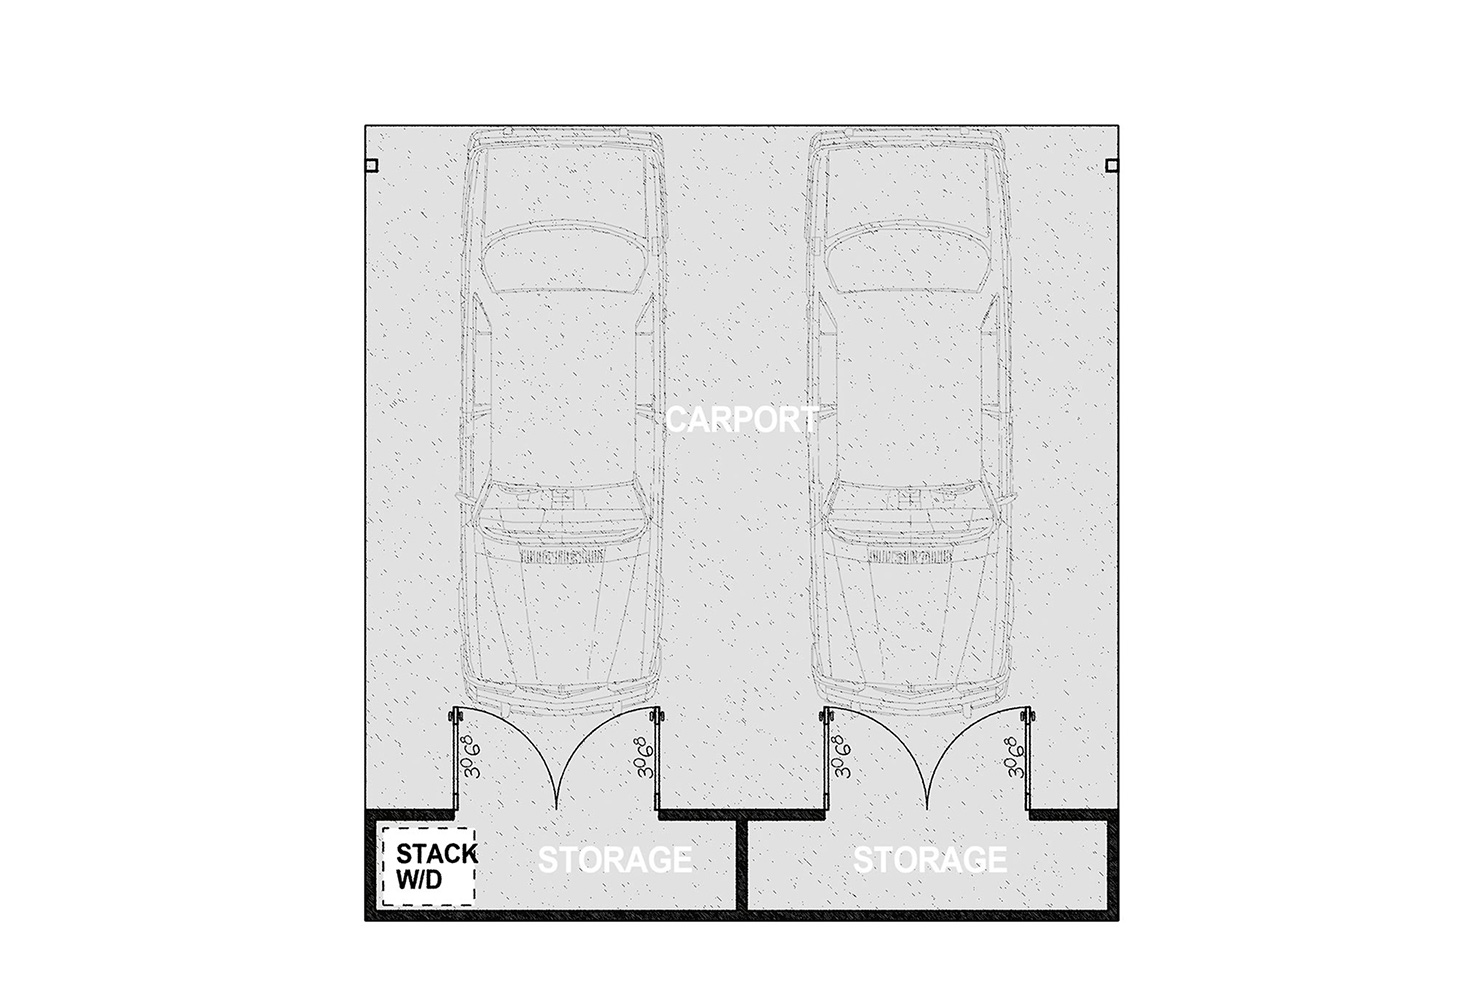 HMCP - Parking for two vehicles and two ample storage closets. It offers approximately 785 square feet of covered parking on a 510 square foot concrete slab.